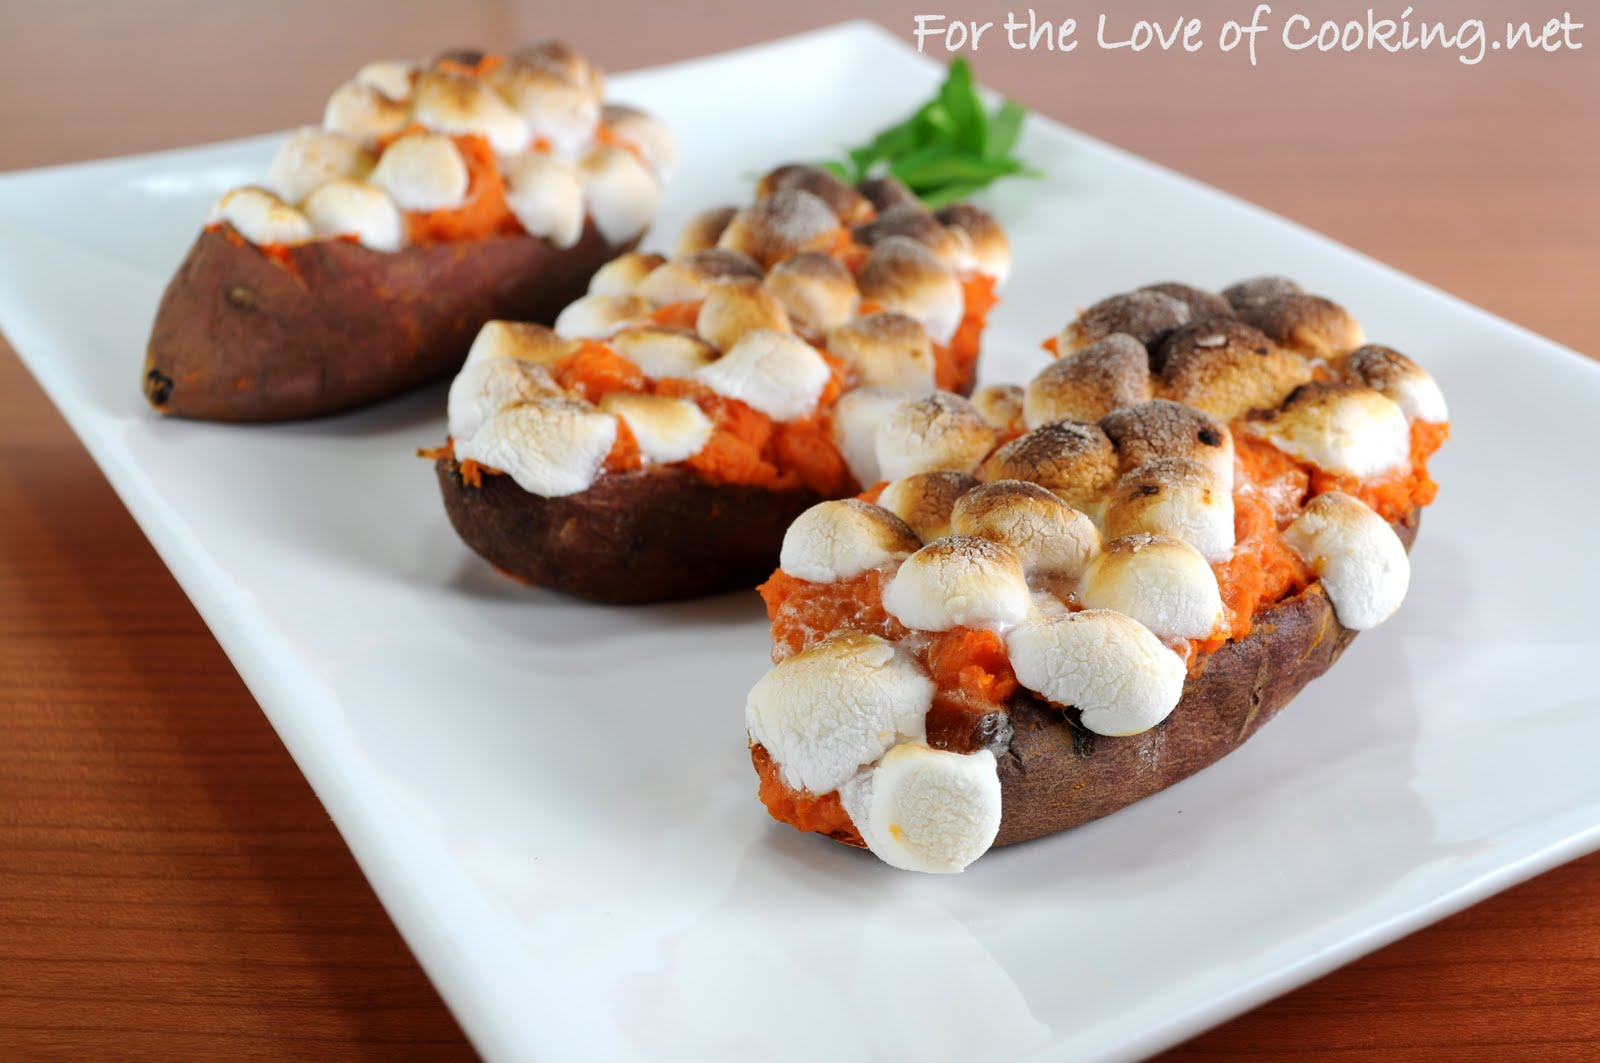 ... of Cooking: Twice Baked Maple & Cinnamon Yams with Mini Marshmallows